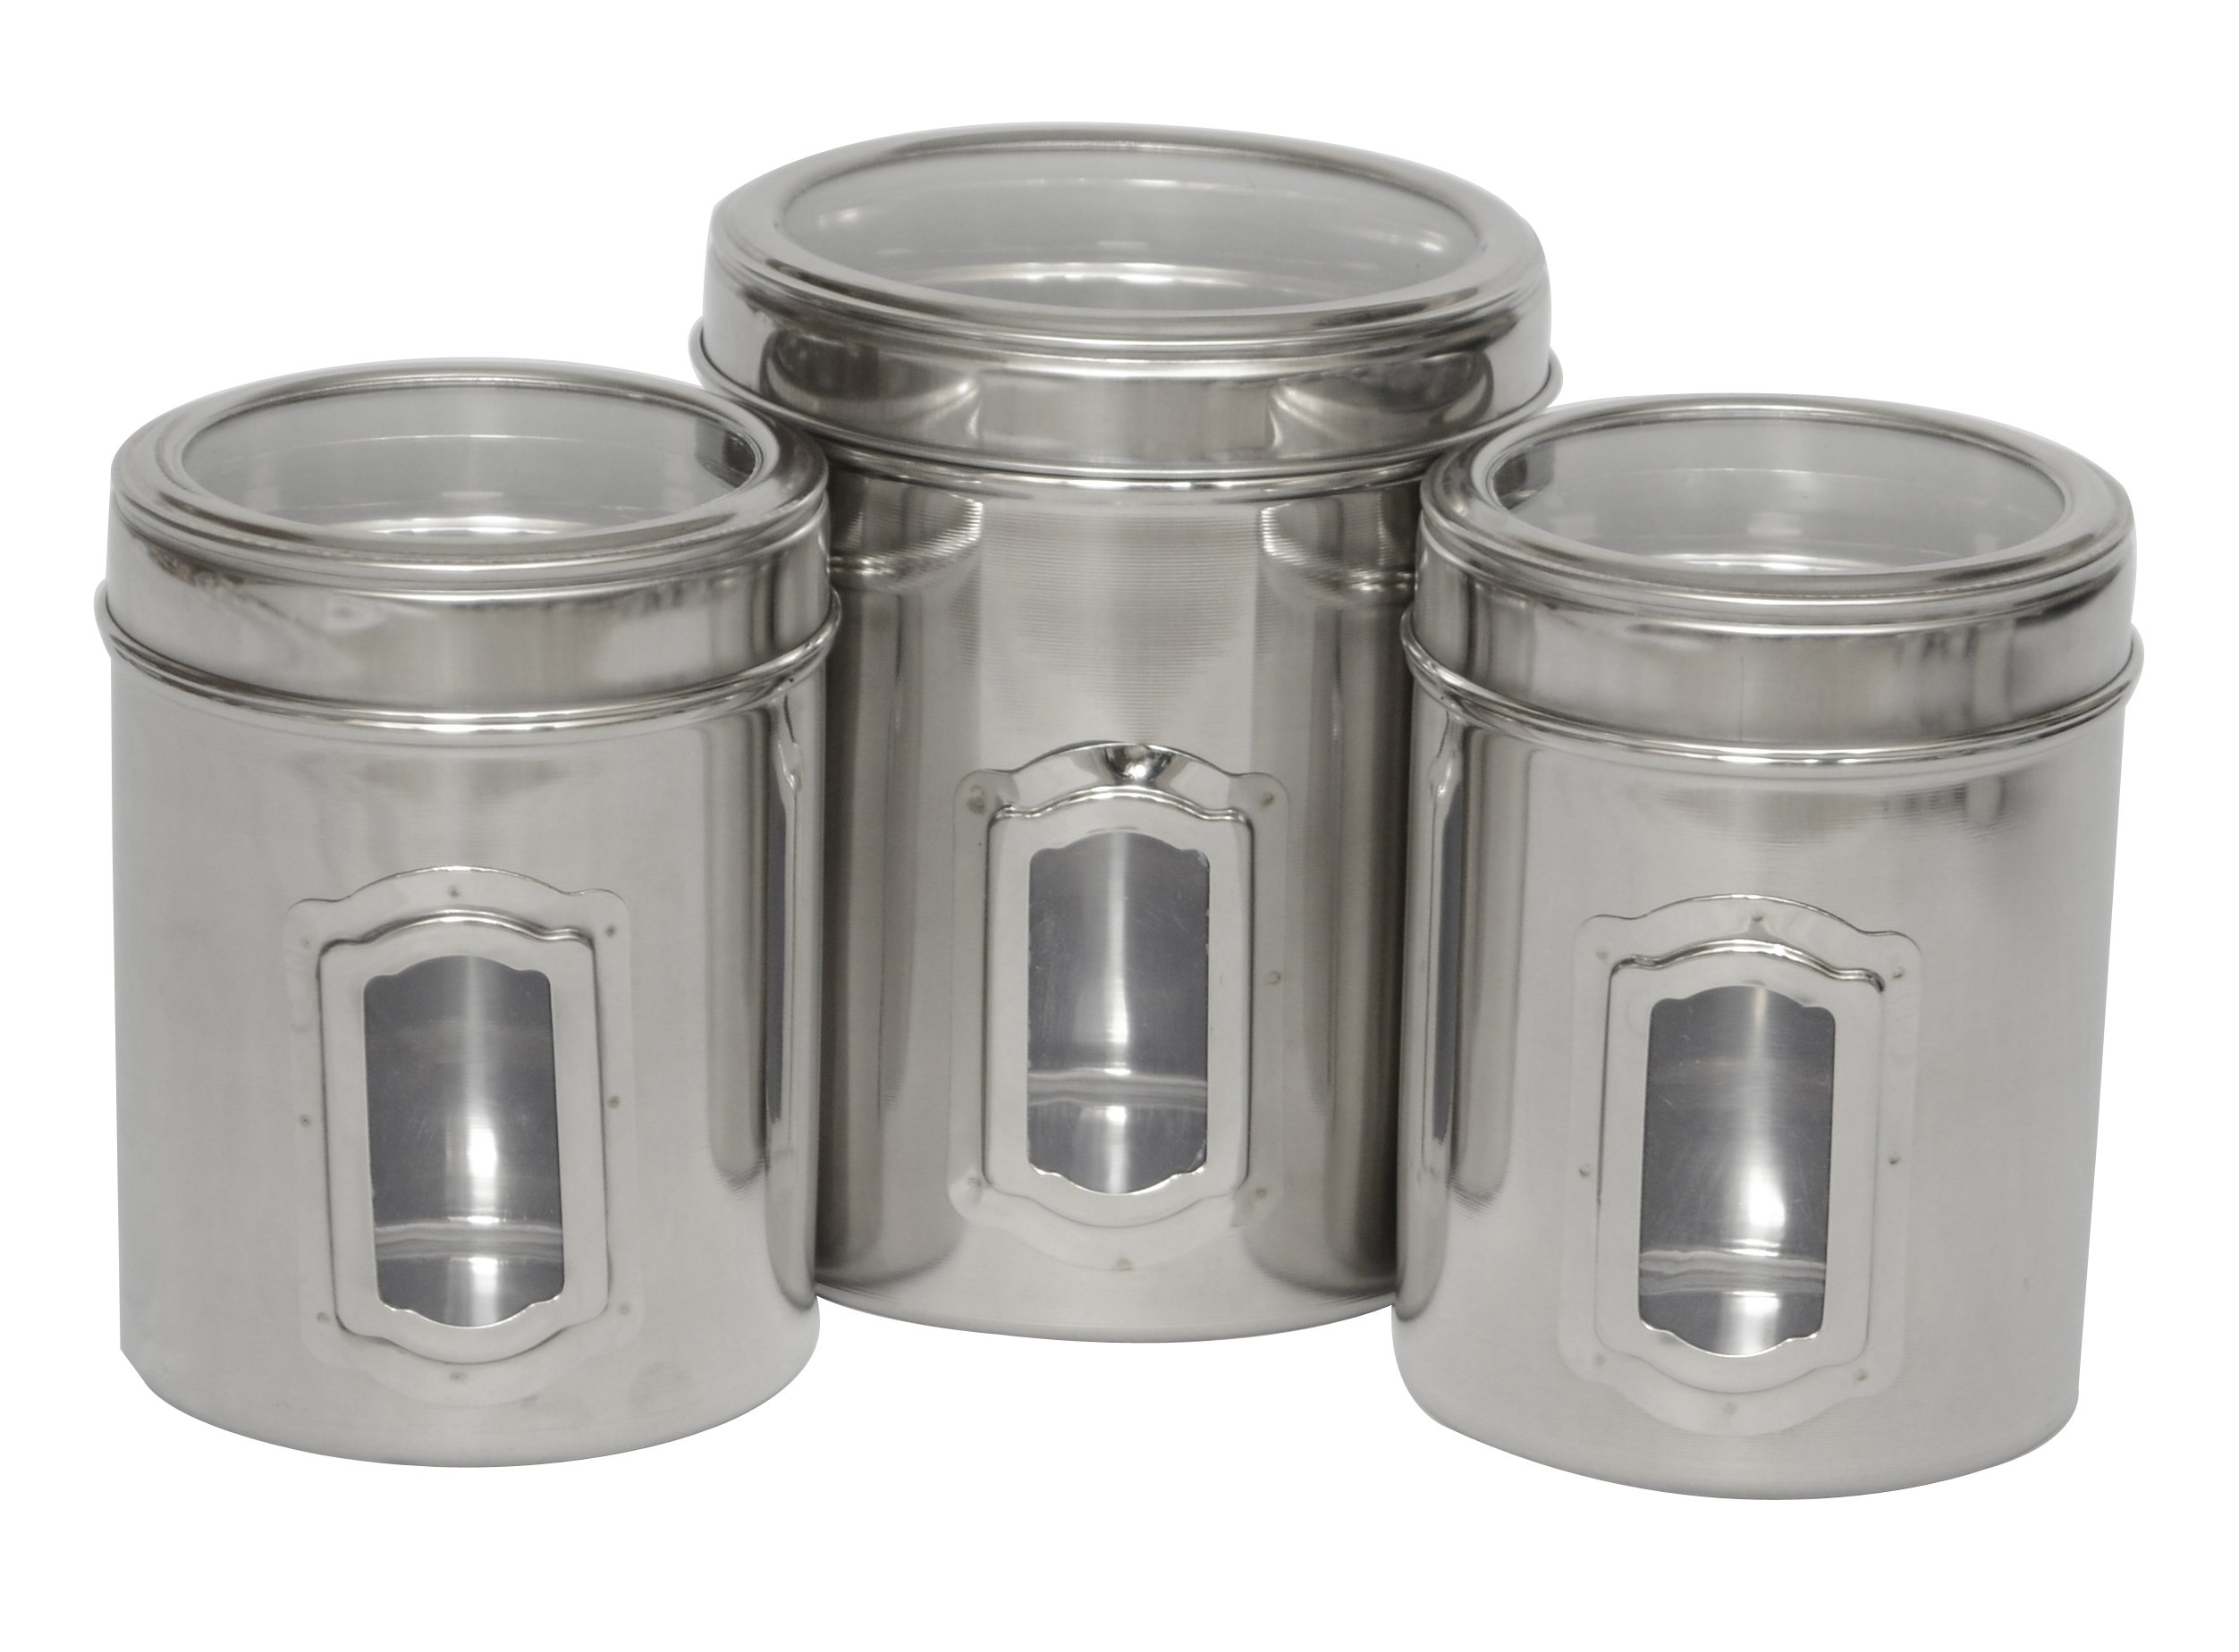 Iconic Pet Different Sizes of Canister with See Through Lids (Set of 3) by Iconic Pet